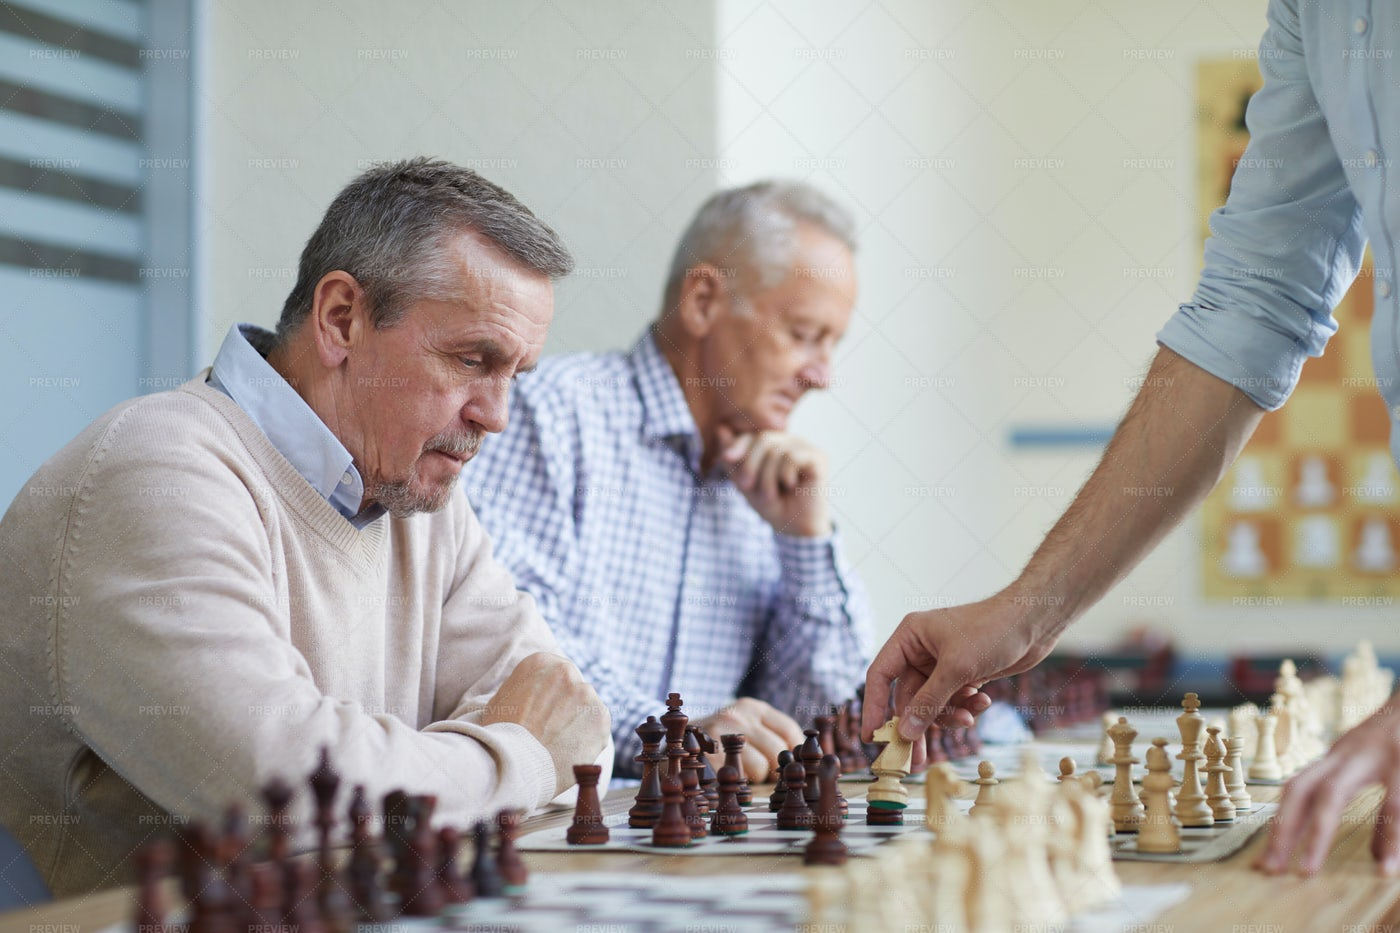 Leisure Time At Chess Club: Stock Photos